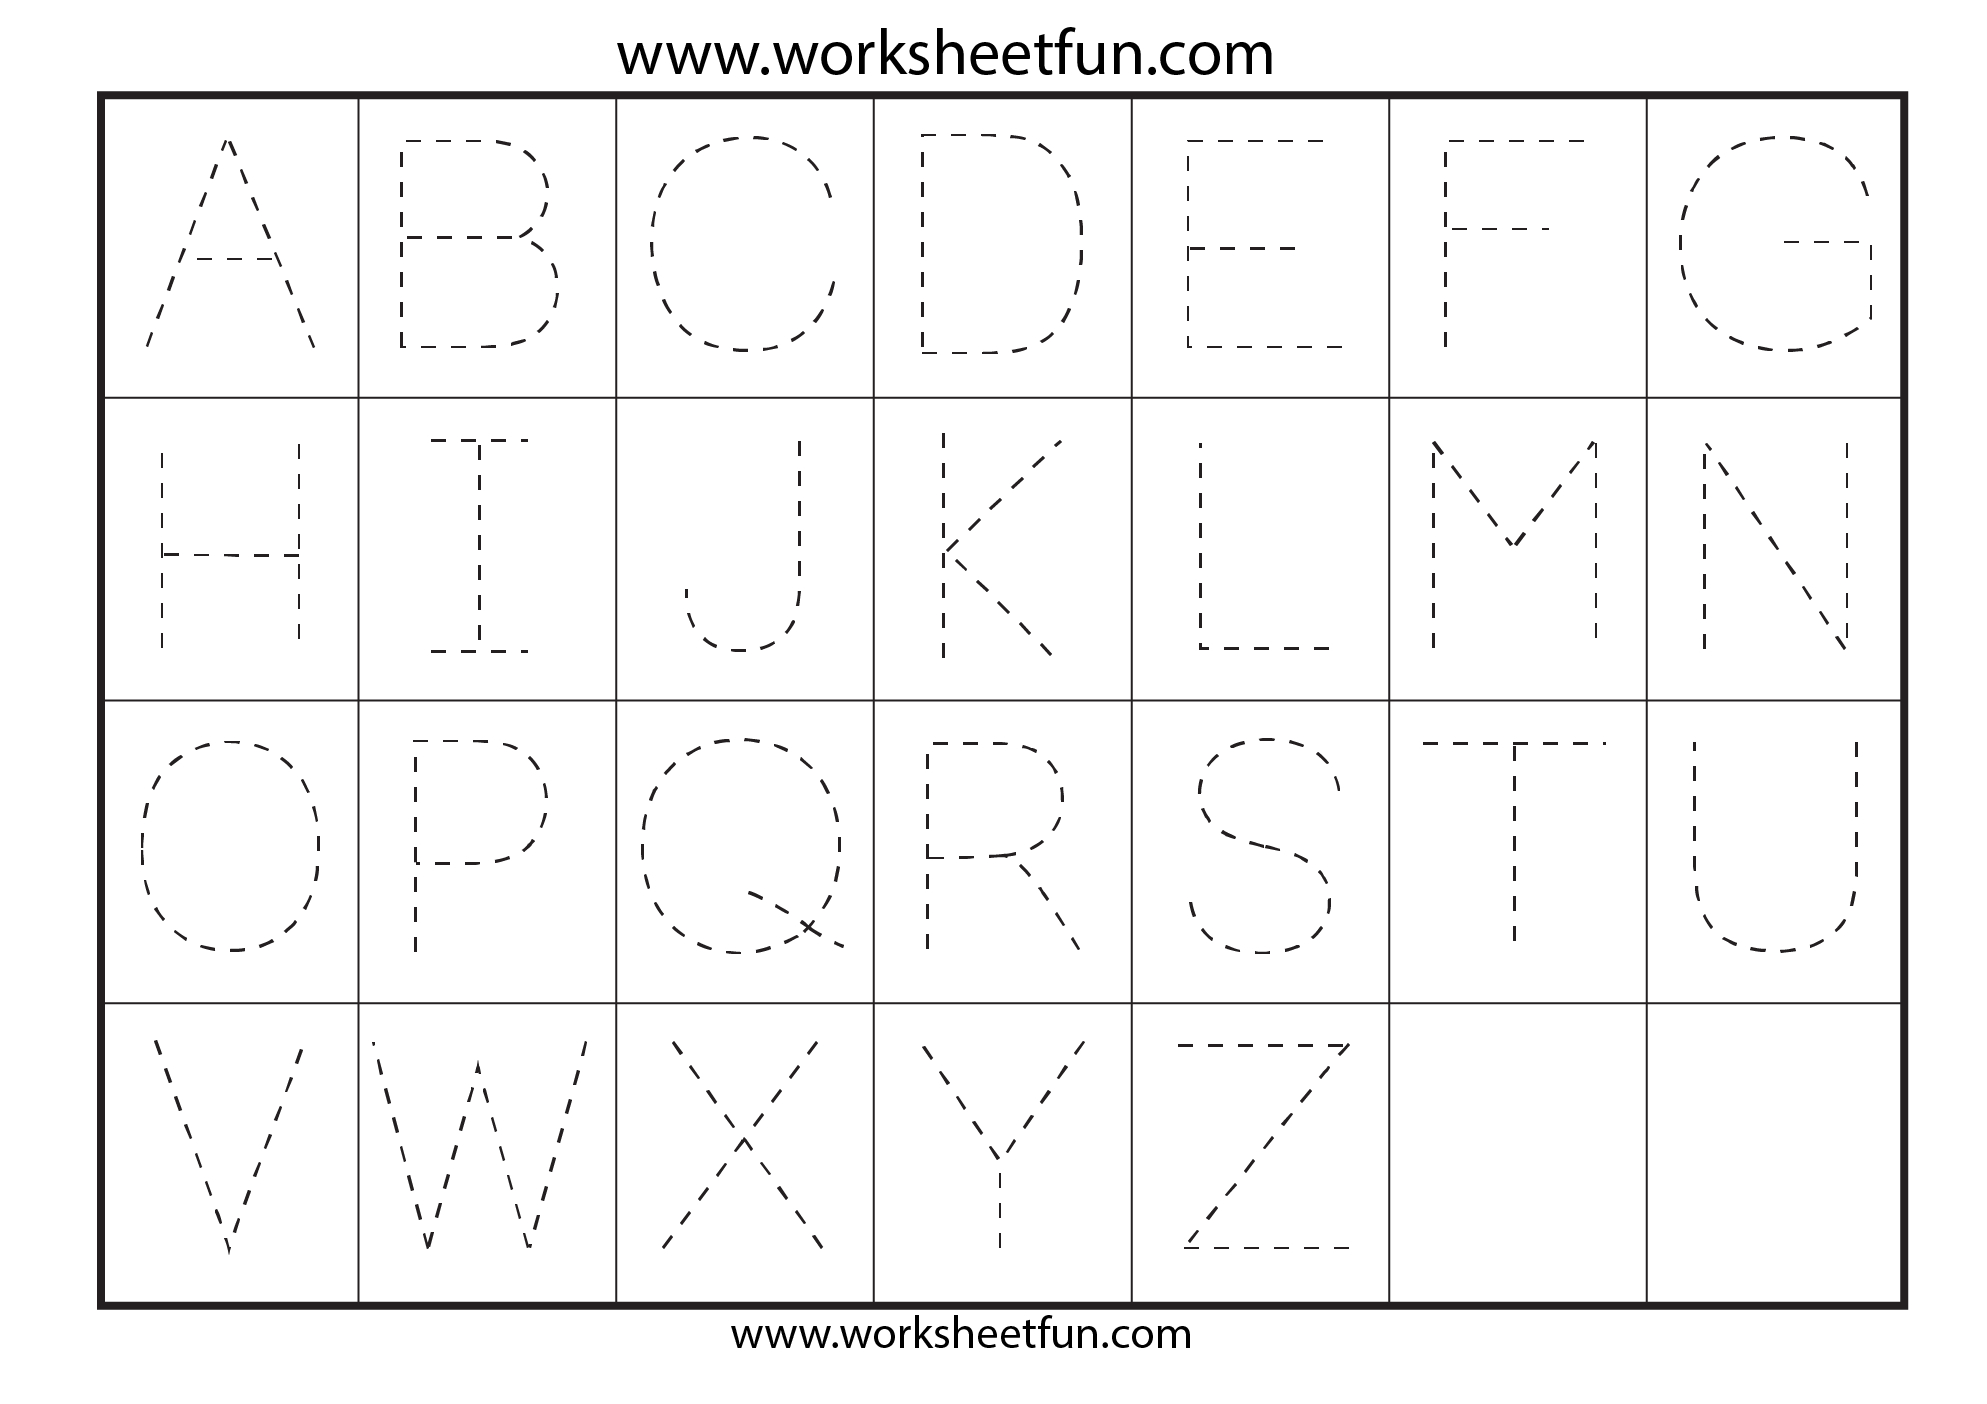 Free Tracing Letters Worksheet | Printable Worksheets And intended for Tracing Letters Worksheet Printable Free